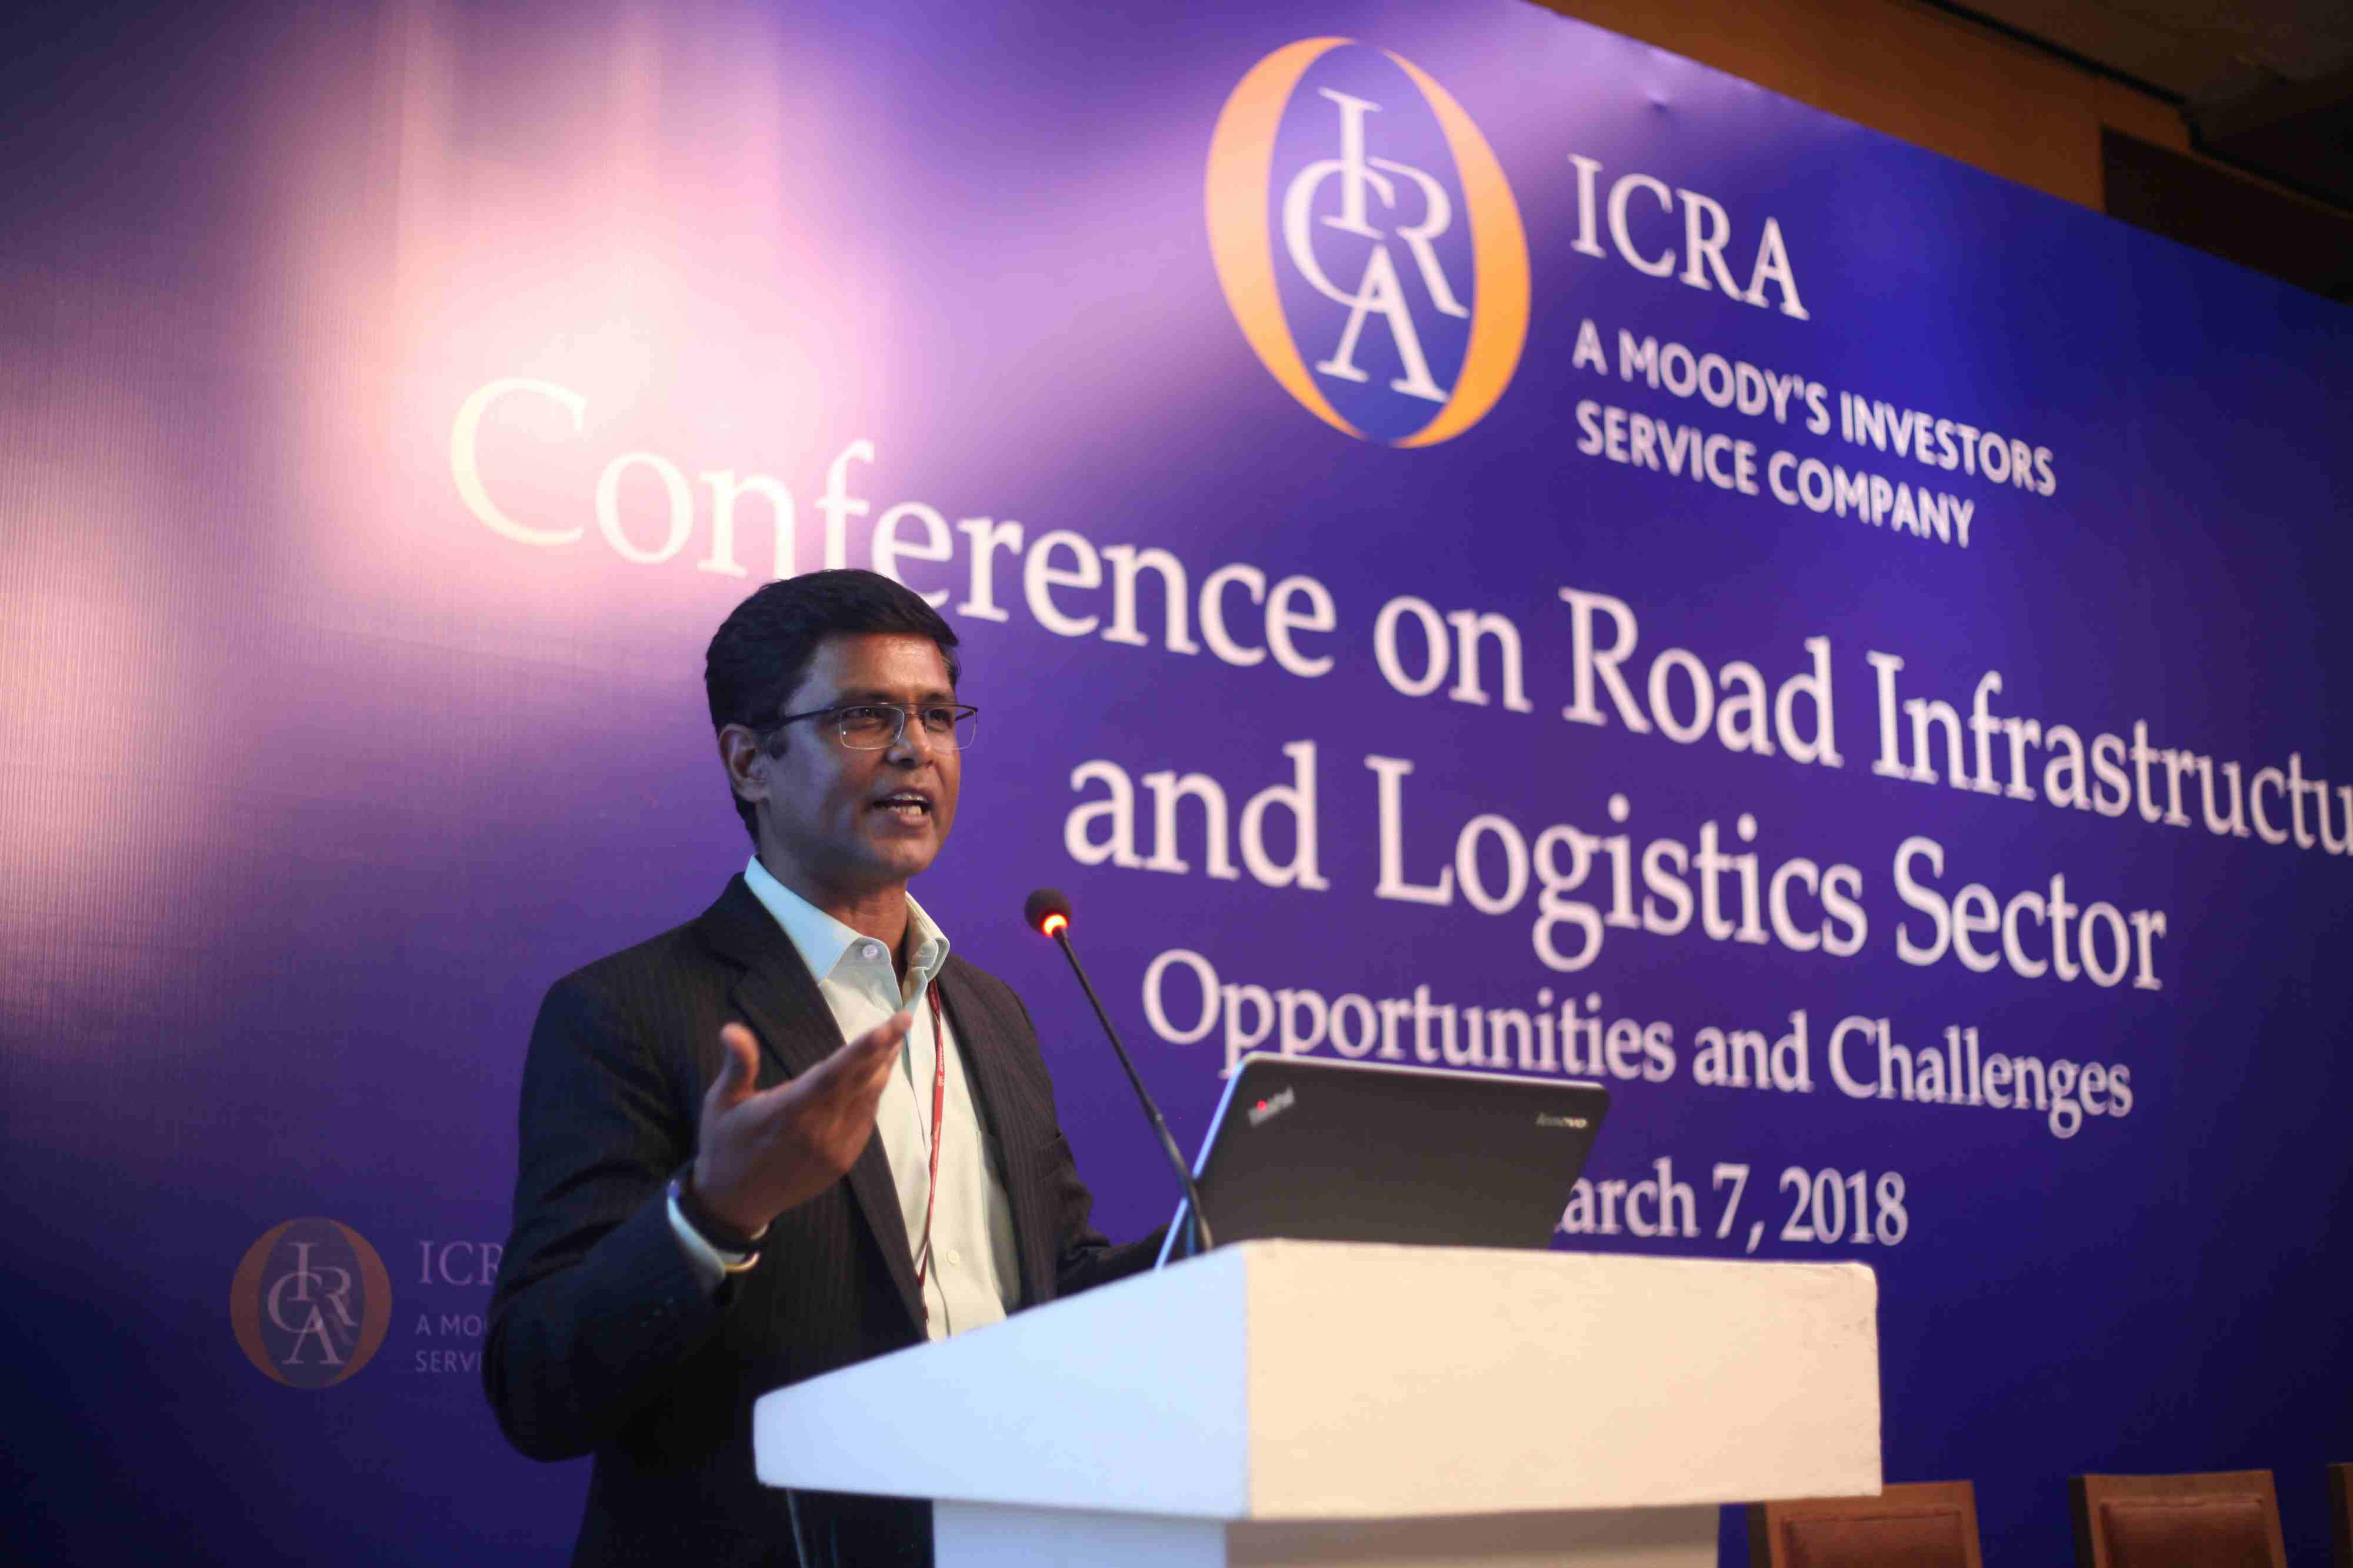 Mr. Keshav Chandra, Joint Secretary (Logistics), Department of Commerce, Ministry of Commerce and Industry, Government of India delivering keynote speech at the conference